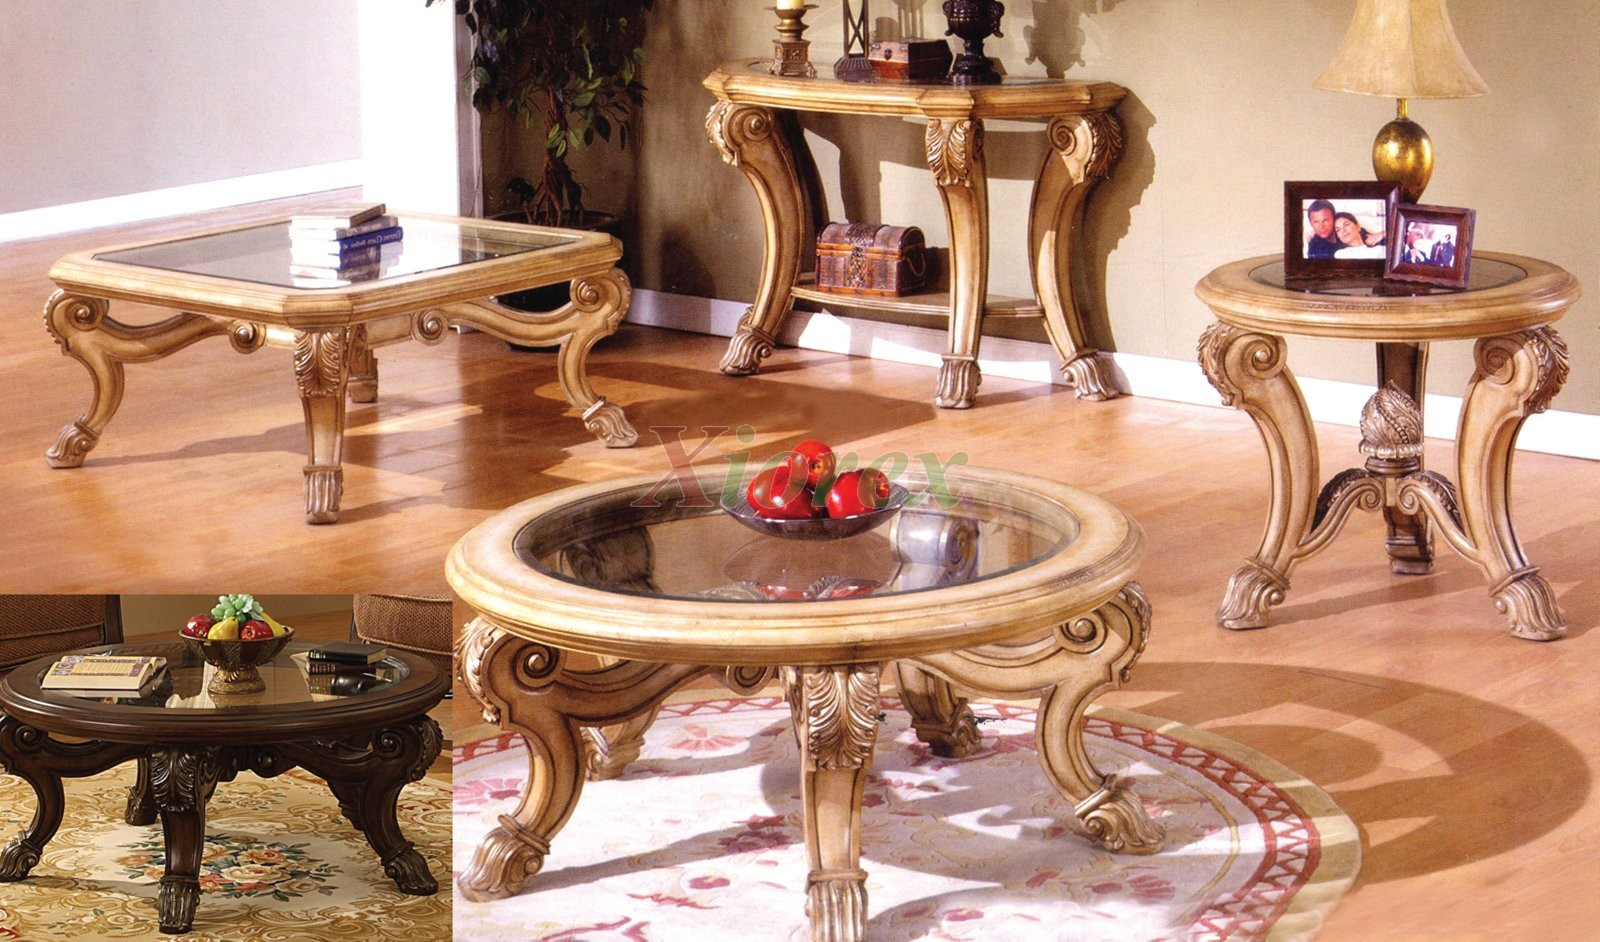 Glass Top Coffee Tables And End Tables Corvi Coffee Table Sets Mississauga Include Either A Circular Or A Square Coffee Table In Dark Brown And Honey 1 (Image 5 of 10)